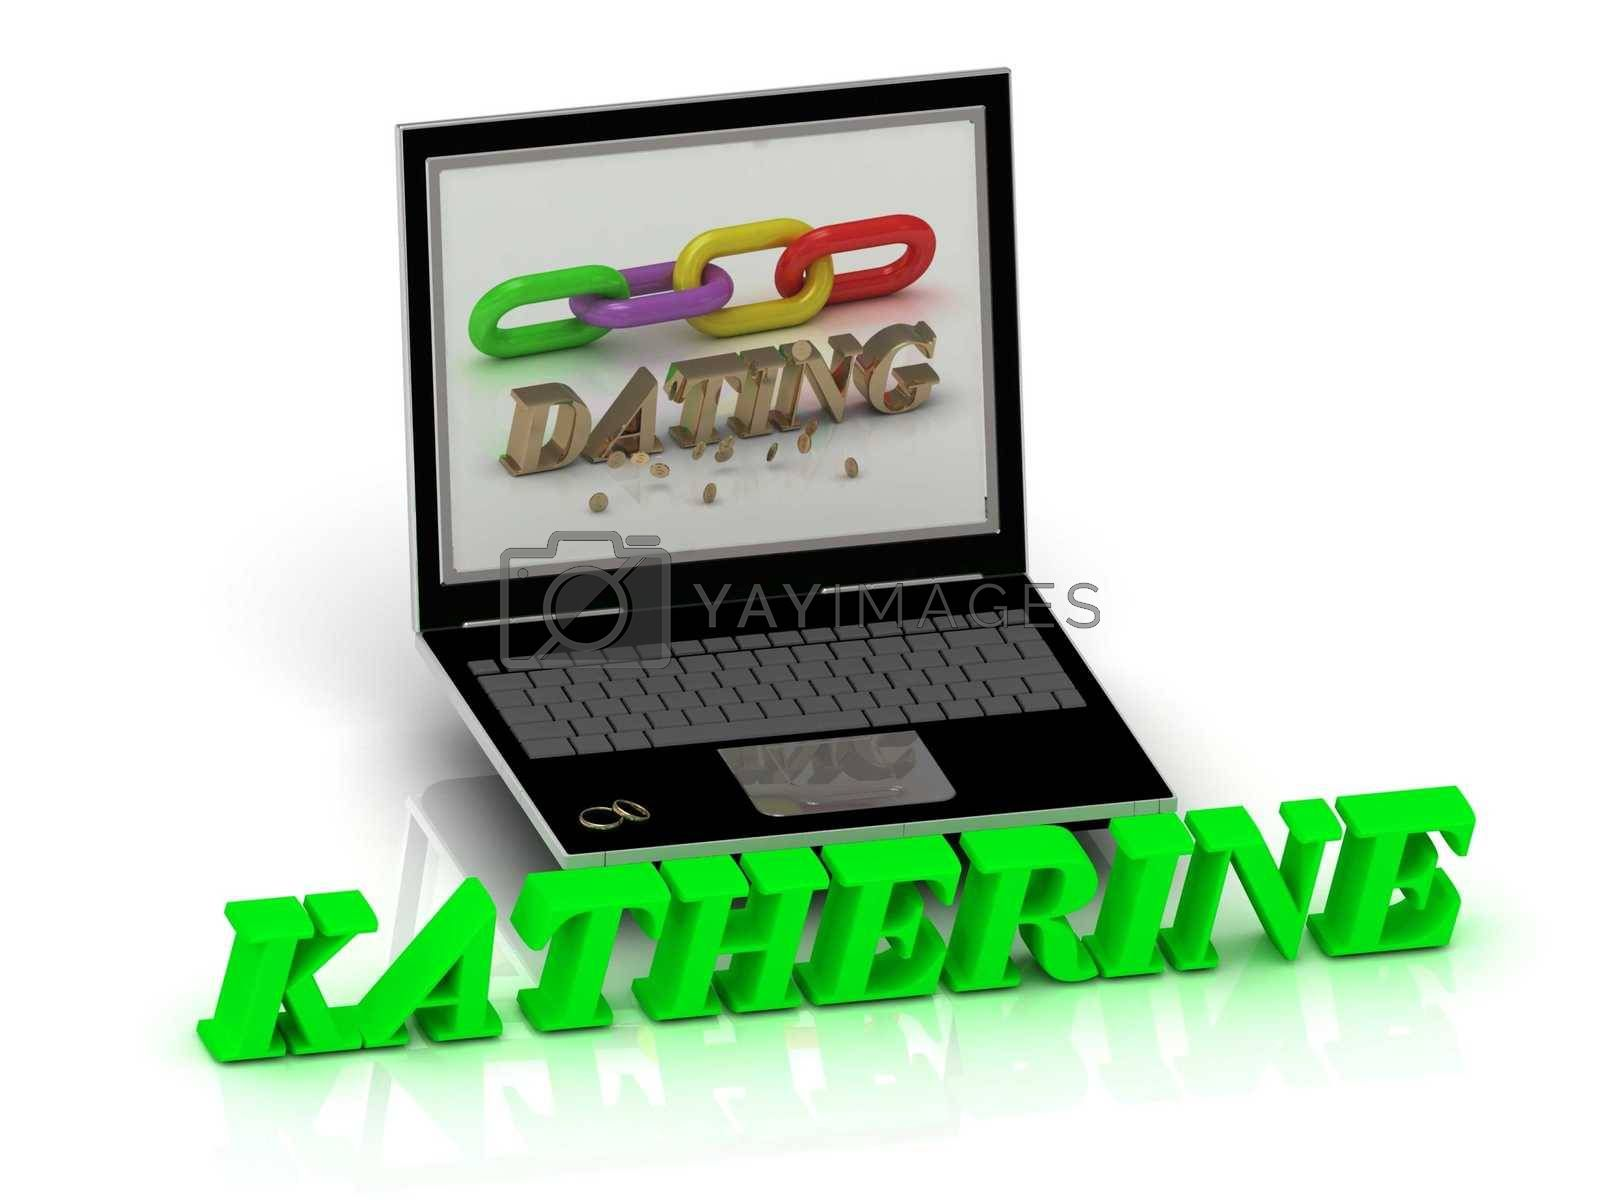 KATHERINE- Name and Family bright letters near Notebook and  inscription Dating on a white background